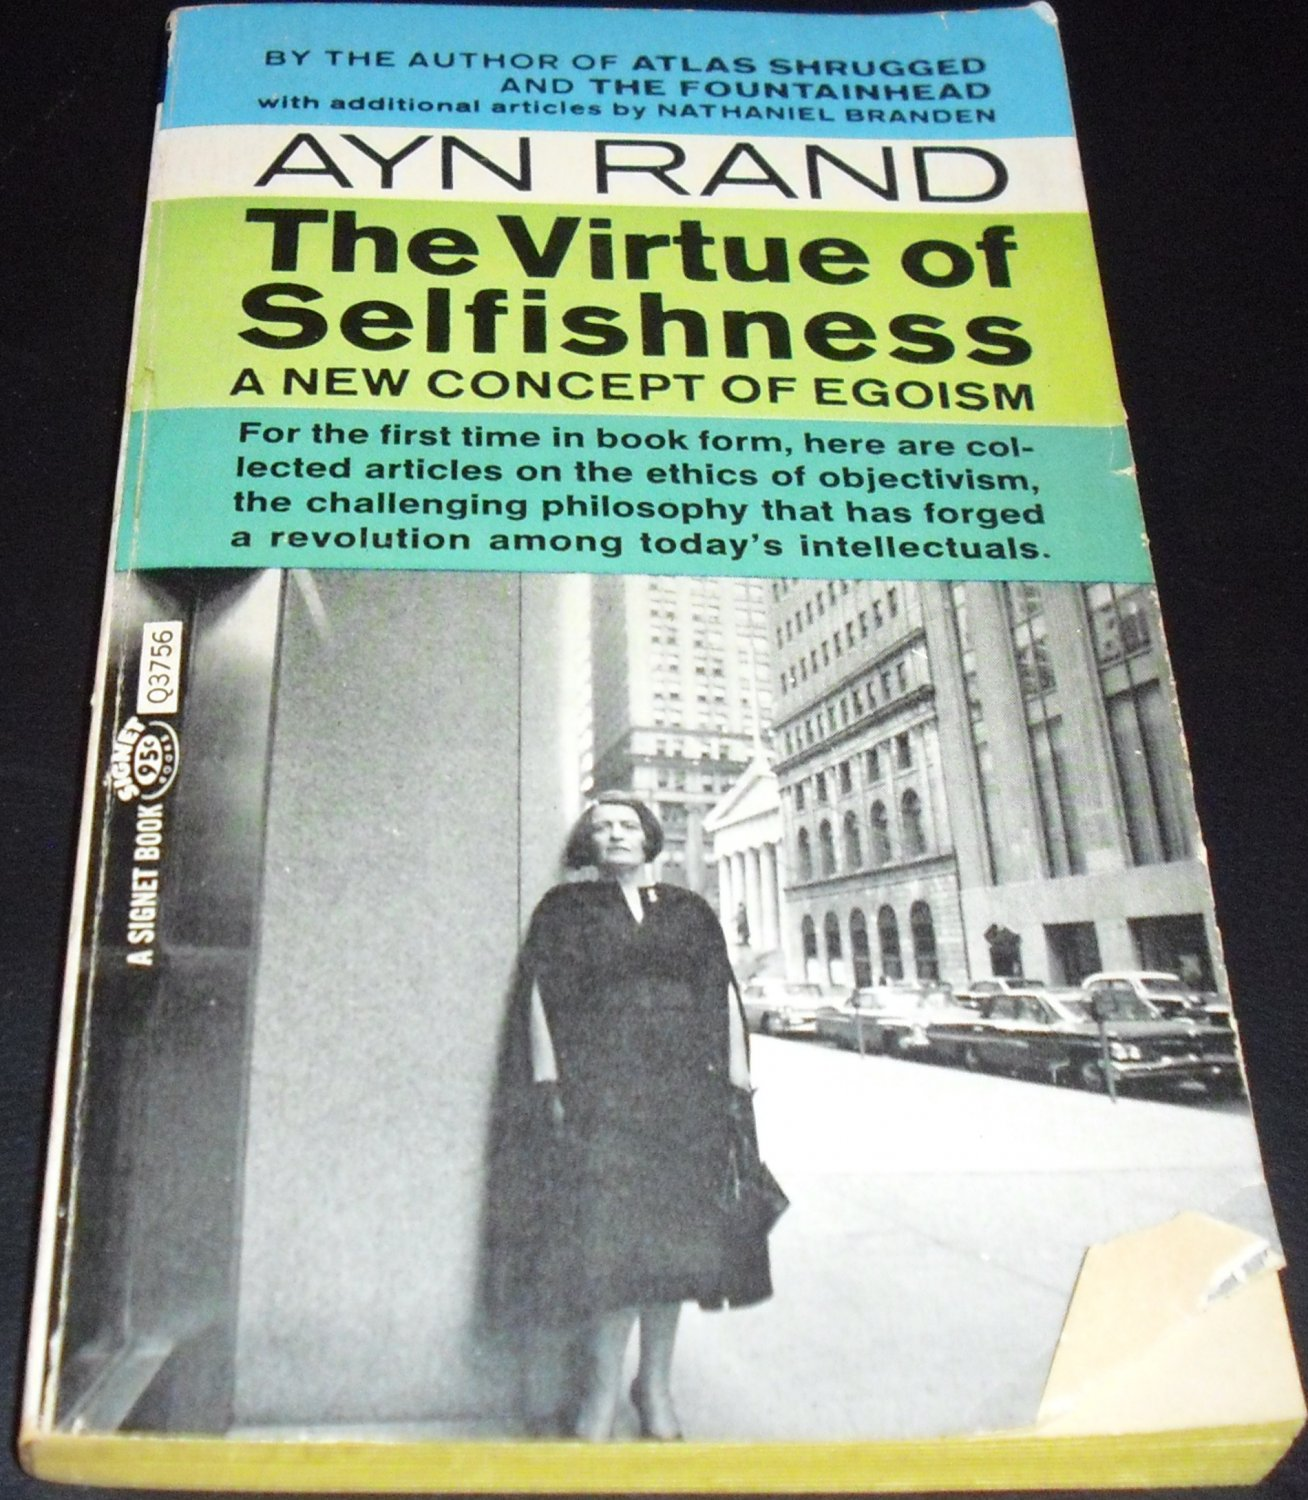 ayn rand essays and articles